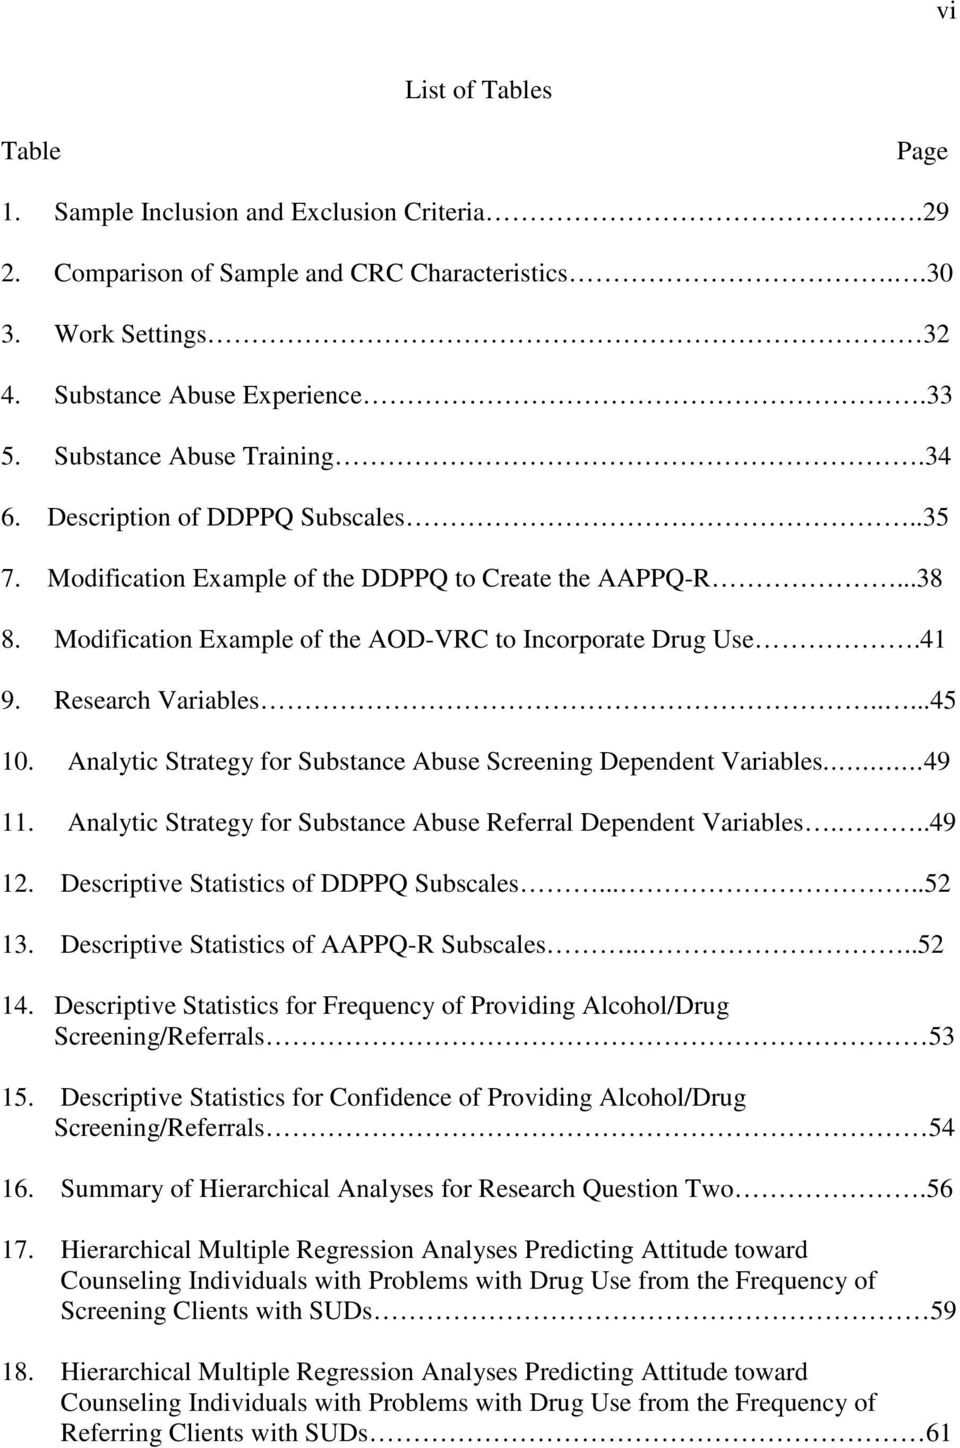 Research Variables.....45 10. Analytic Strategy for Substance Abuse Screening Dependent Variables.49 11. Analytic Strategy for Substance Abuse Referral Dependent Variables...49 12.